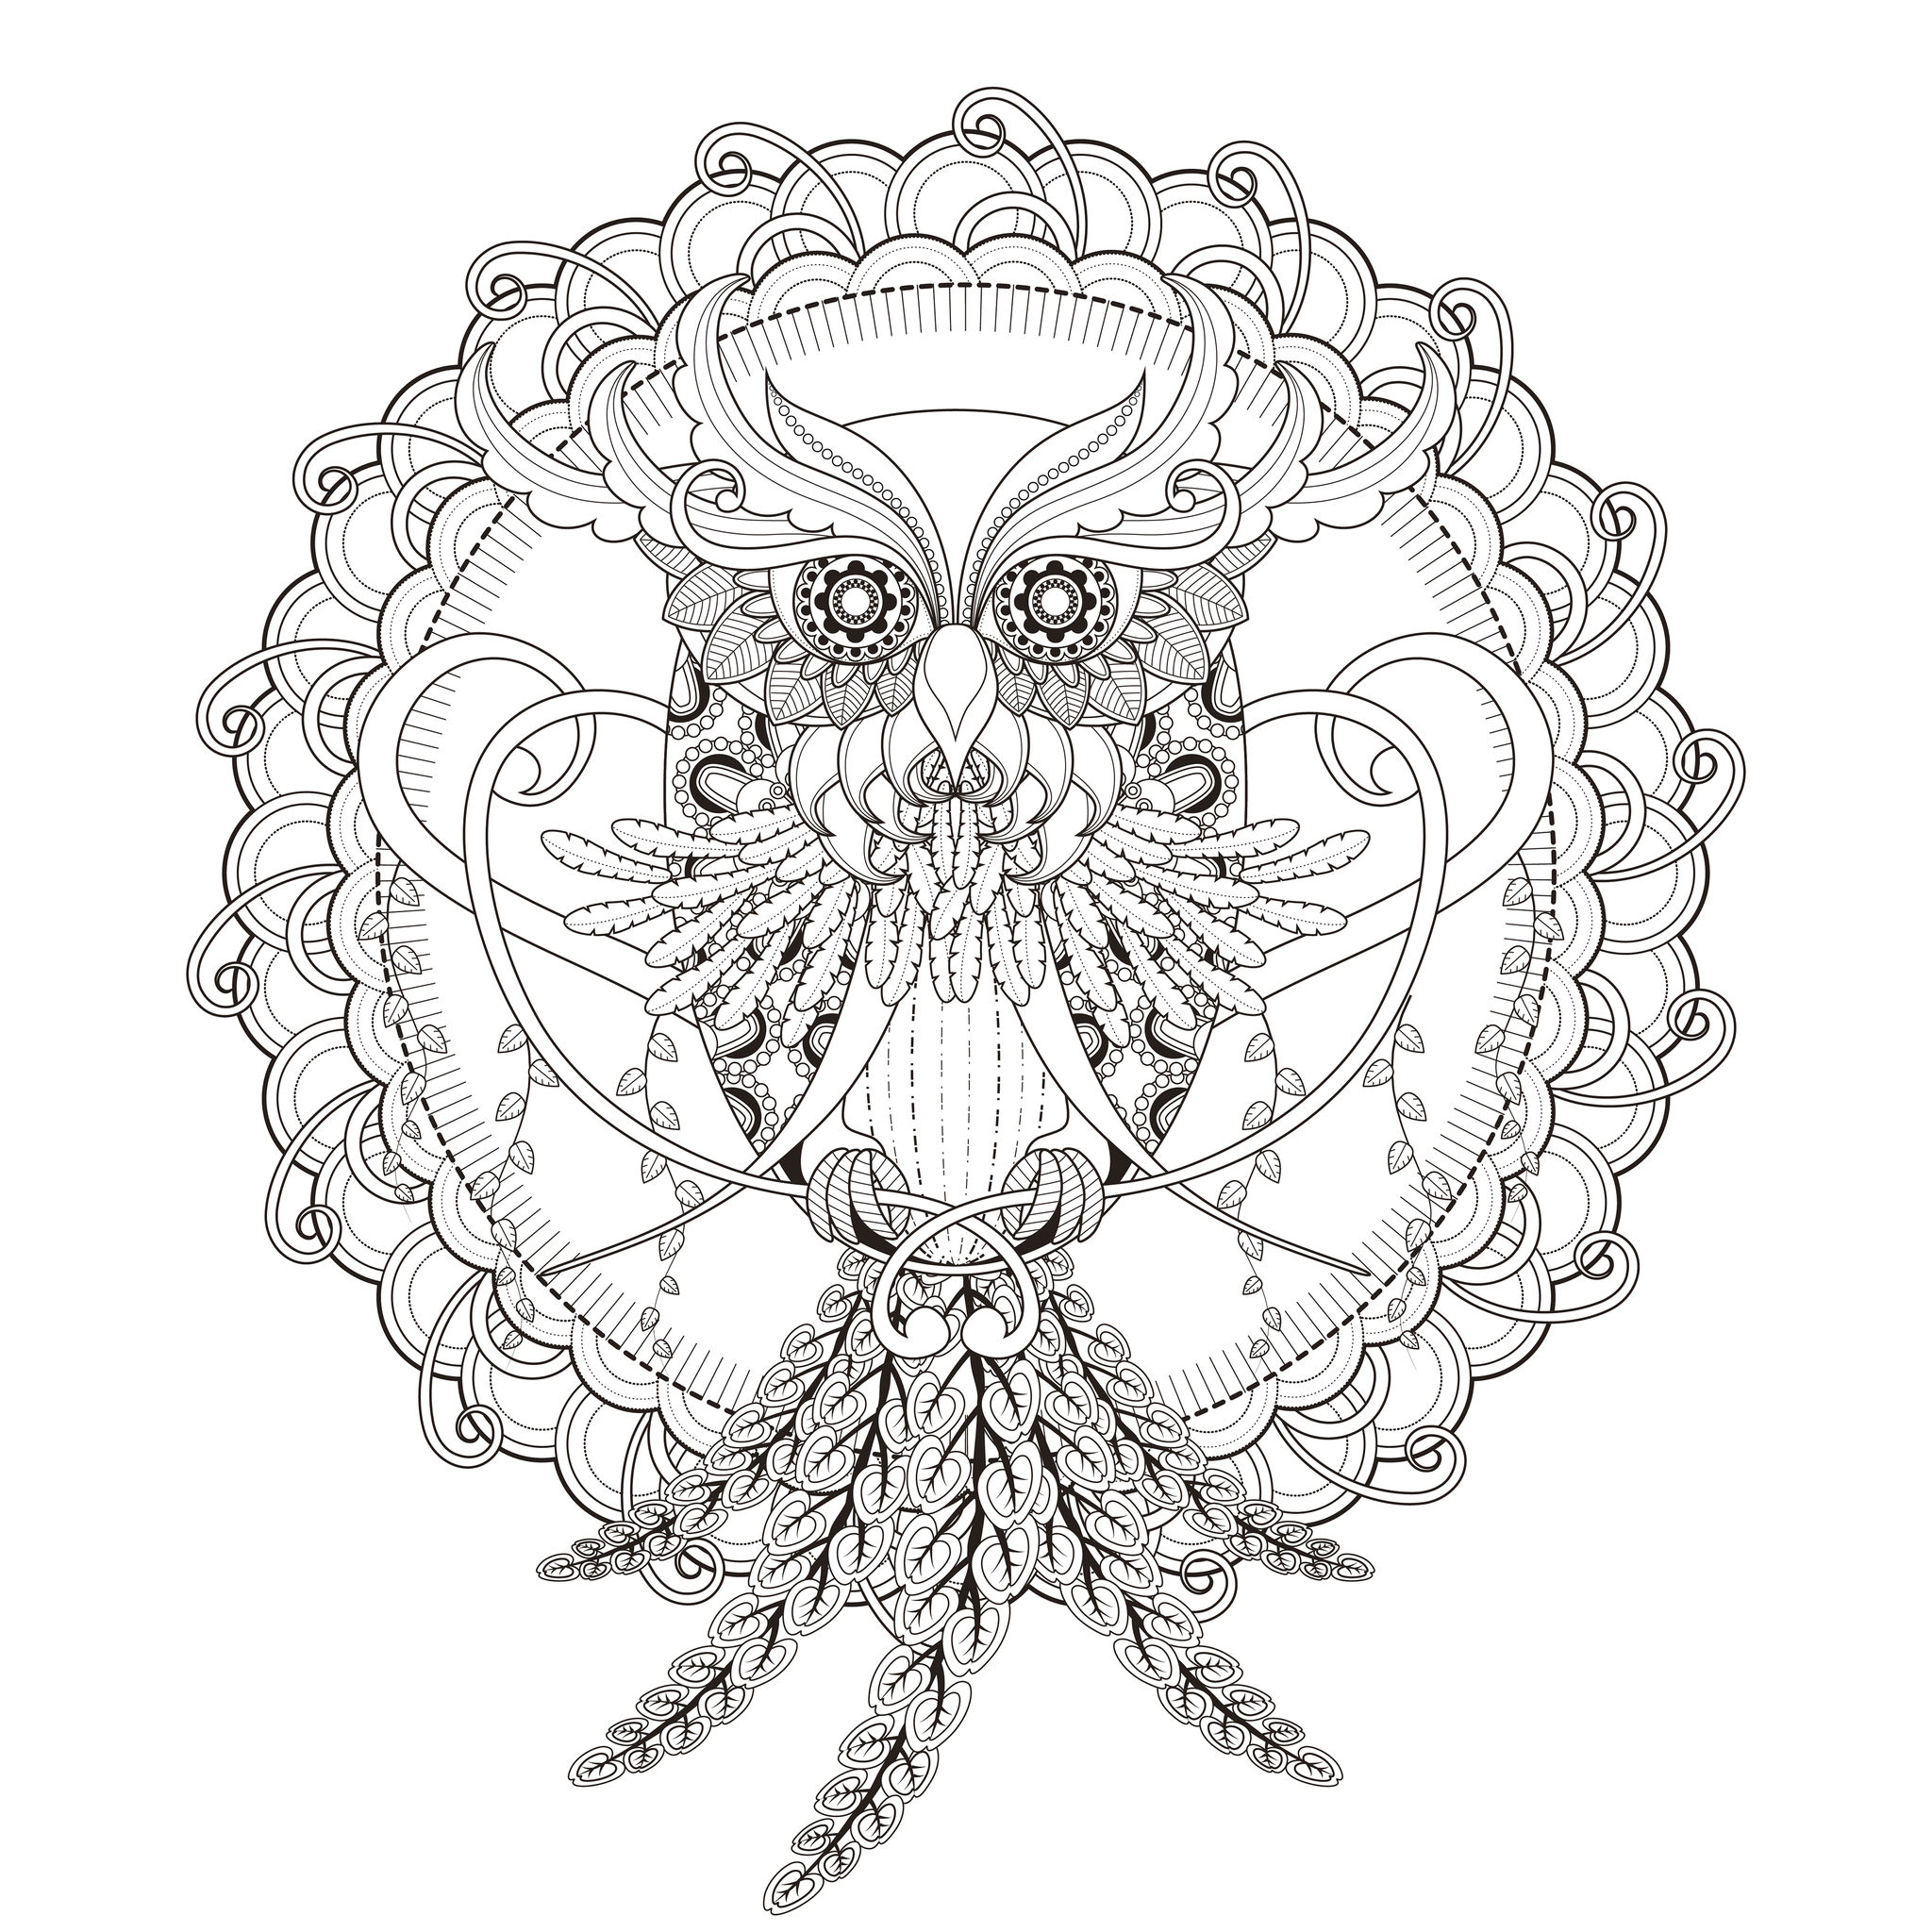 Mandala Owl - M&alas Adult Coloring Pages